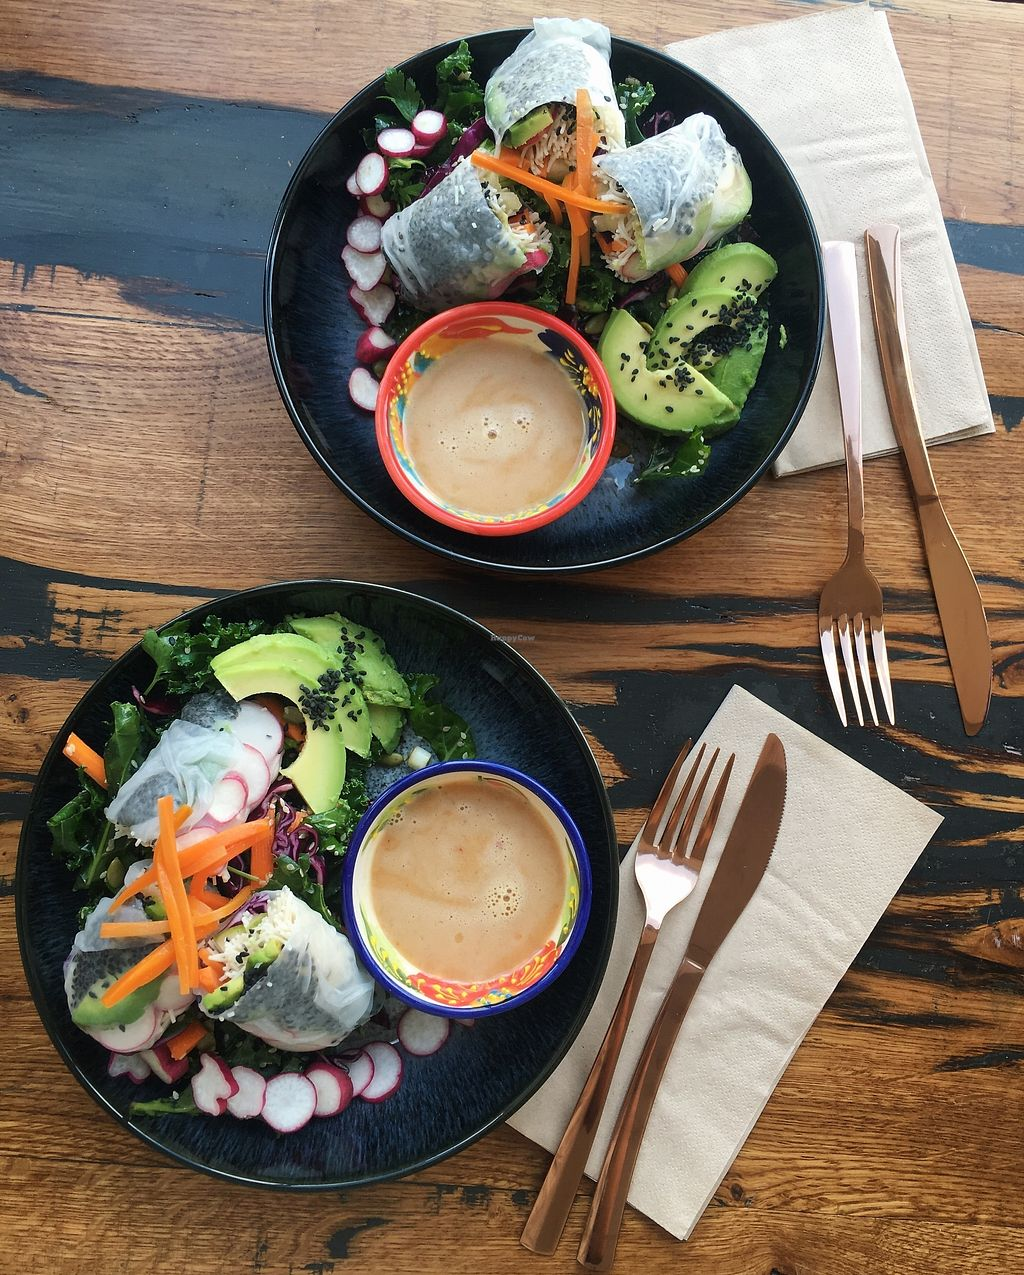 """Photo of Lone Wolves Organics  by <a href=""""/members/profile/loisgb"""">loisgb</a> <br/>The Slaw Salad - an Asian inspired slaw of red cabbage, kale, carrot, spring onion, sesame seeds and pumpkin seeds with a tamari, lime, ginger and chilli dressing. Served with Summer Rolls (rice paper rolls filled with brown rice noodles, black sesame seeds, carrots, avocado, radish and cucumber), avocado, crunchy radishes and sweet pickled carrots, with a peanut dipping sauce <br/> July 5, 2017  - <a href='/contact/abuse/image/95415/276960'>Report</a>"""